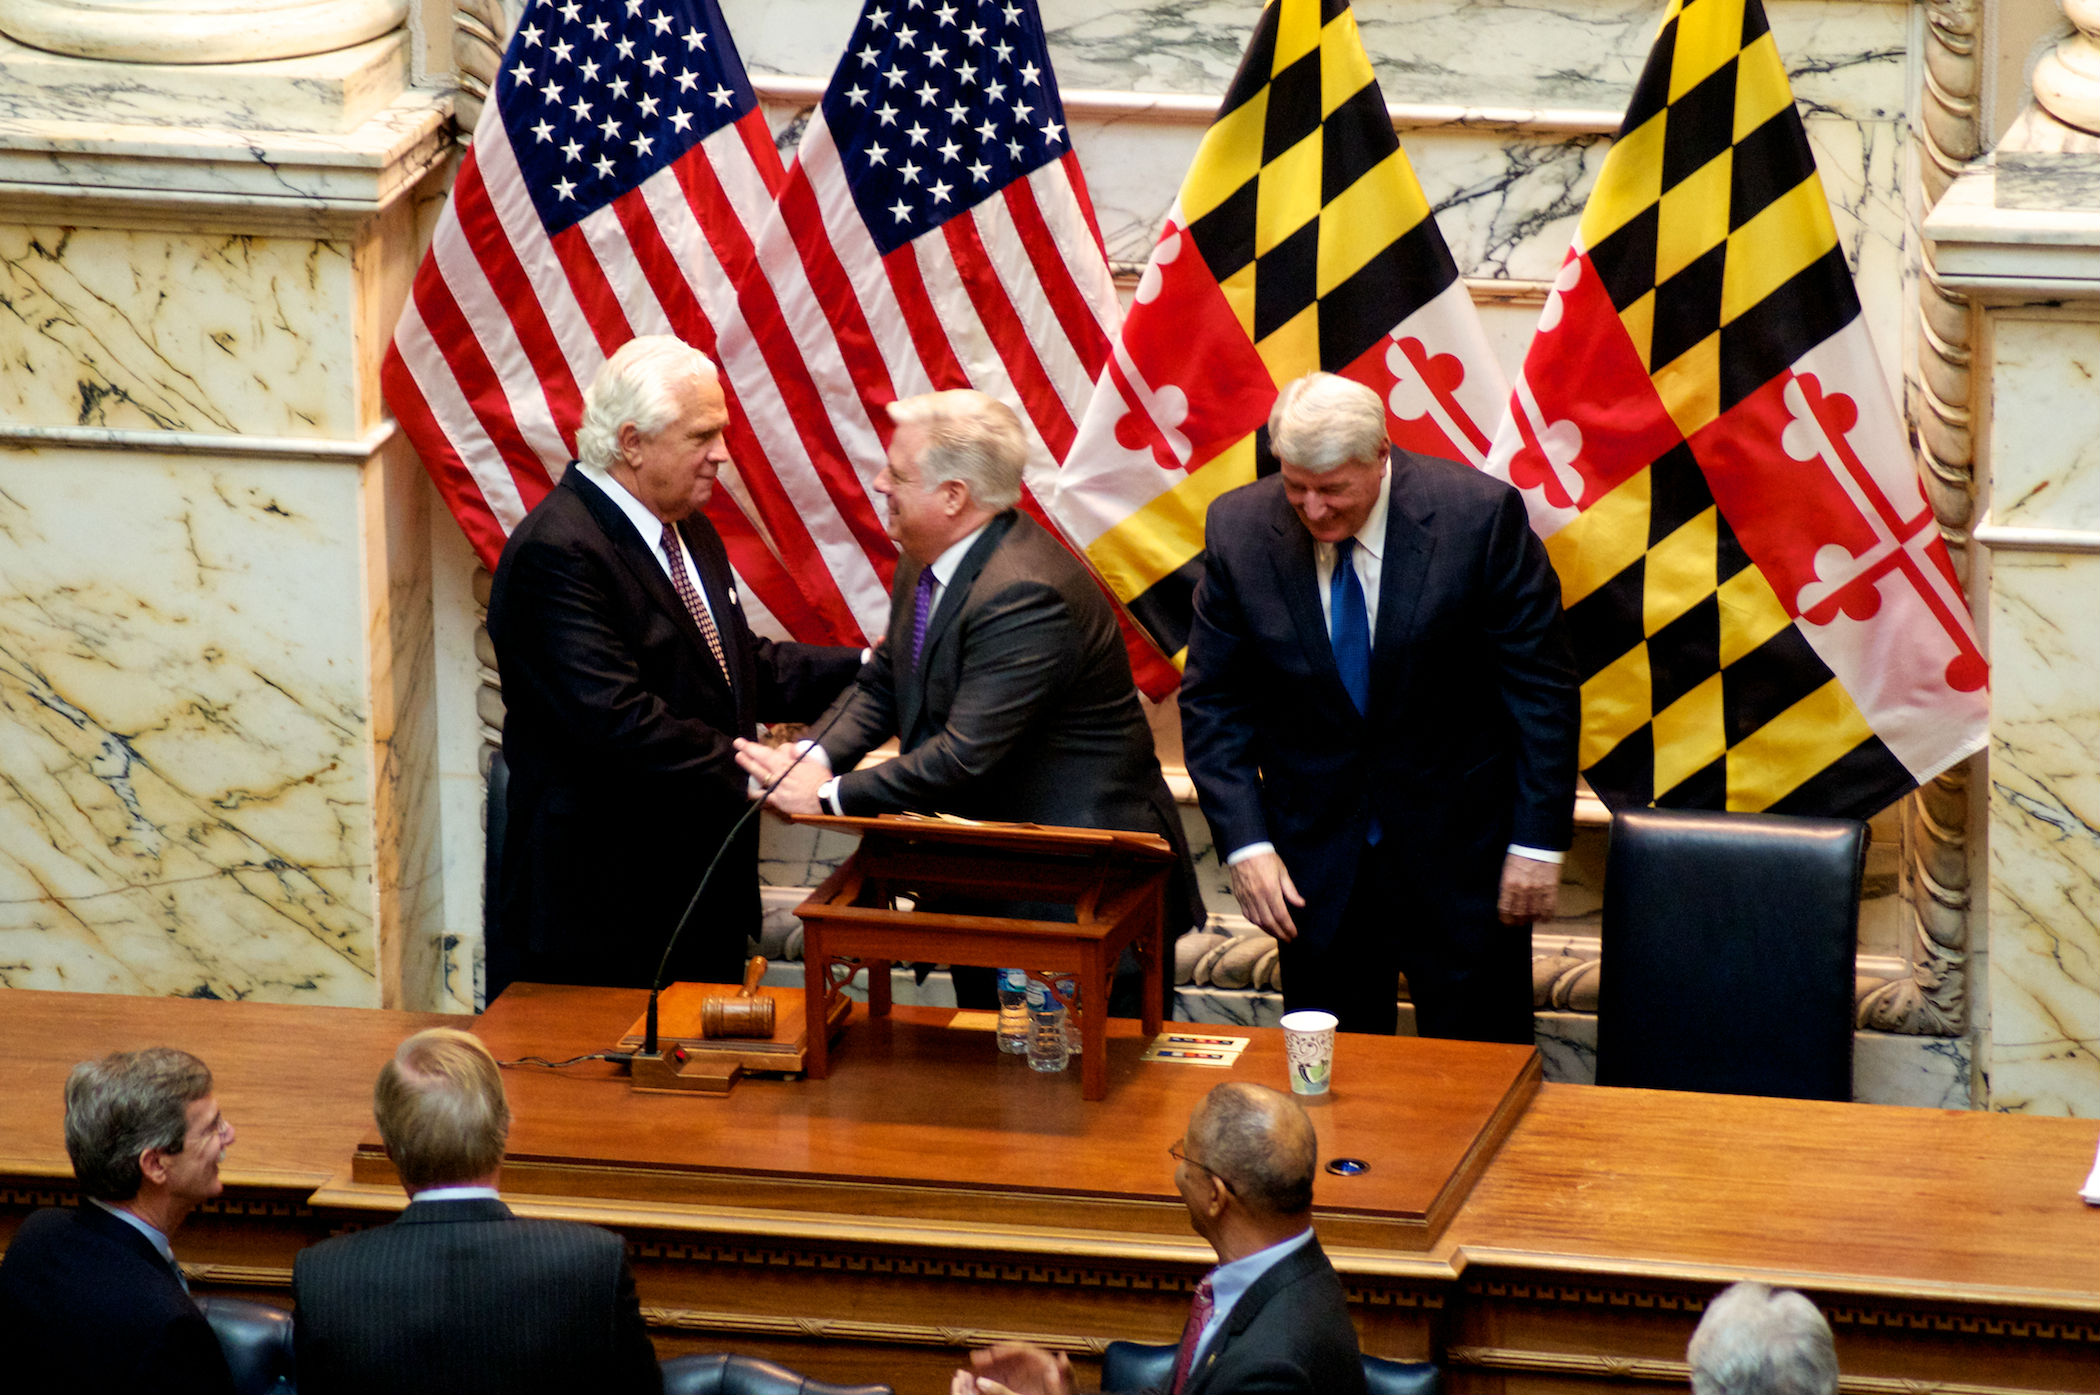 Hogan and legislators can agree on growing Md. jobs